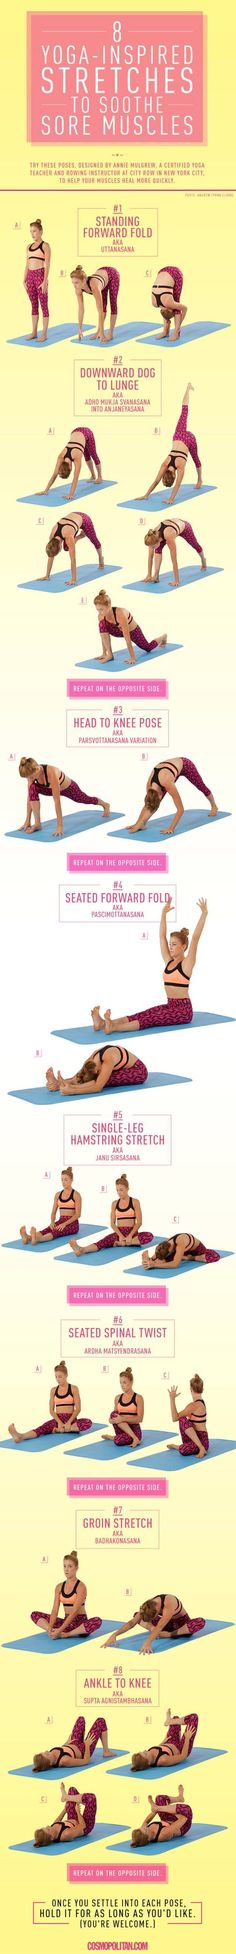 Say hello to yoga fo